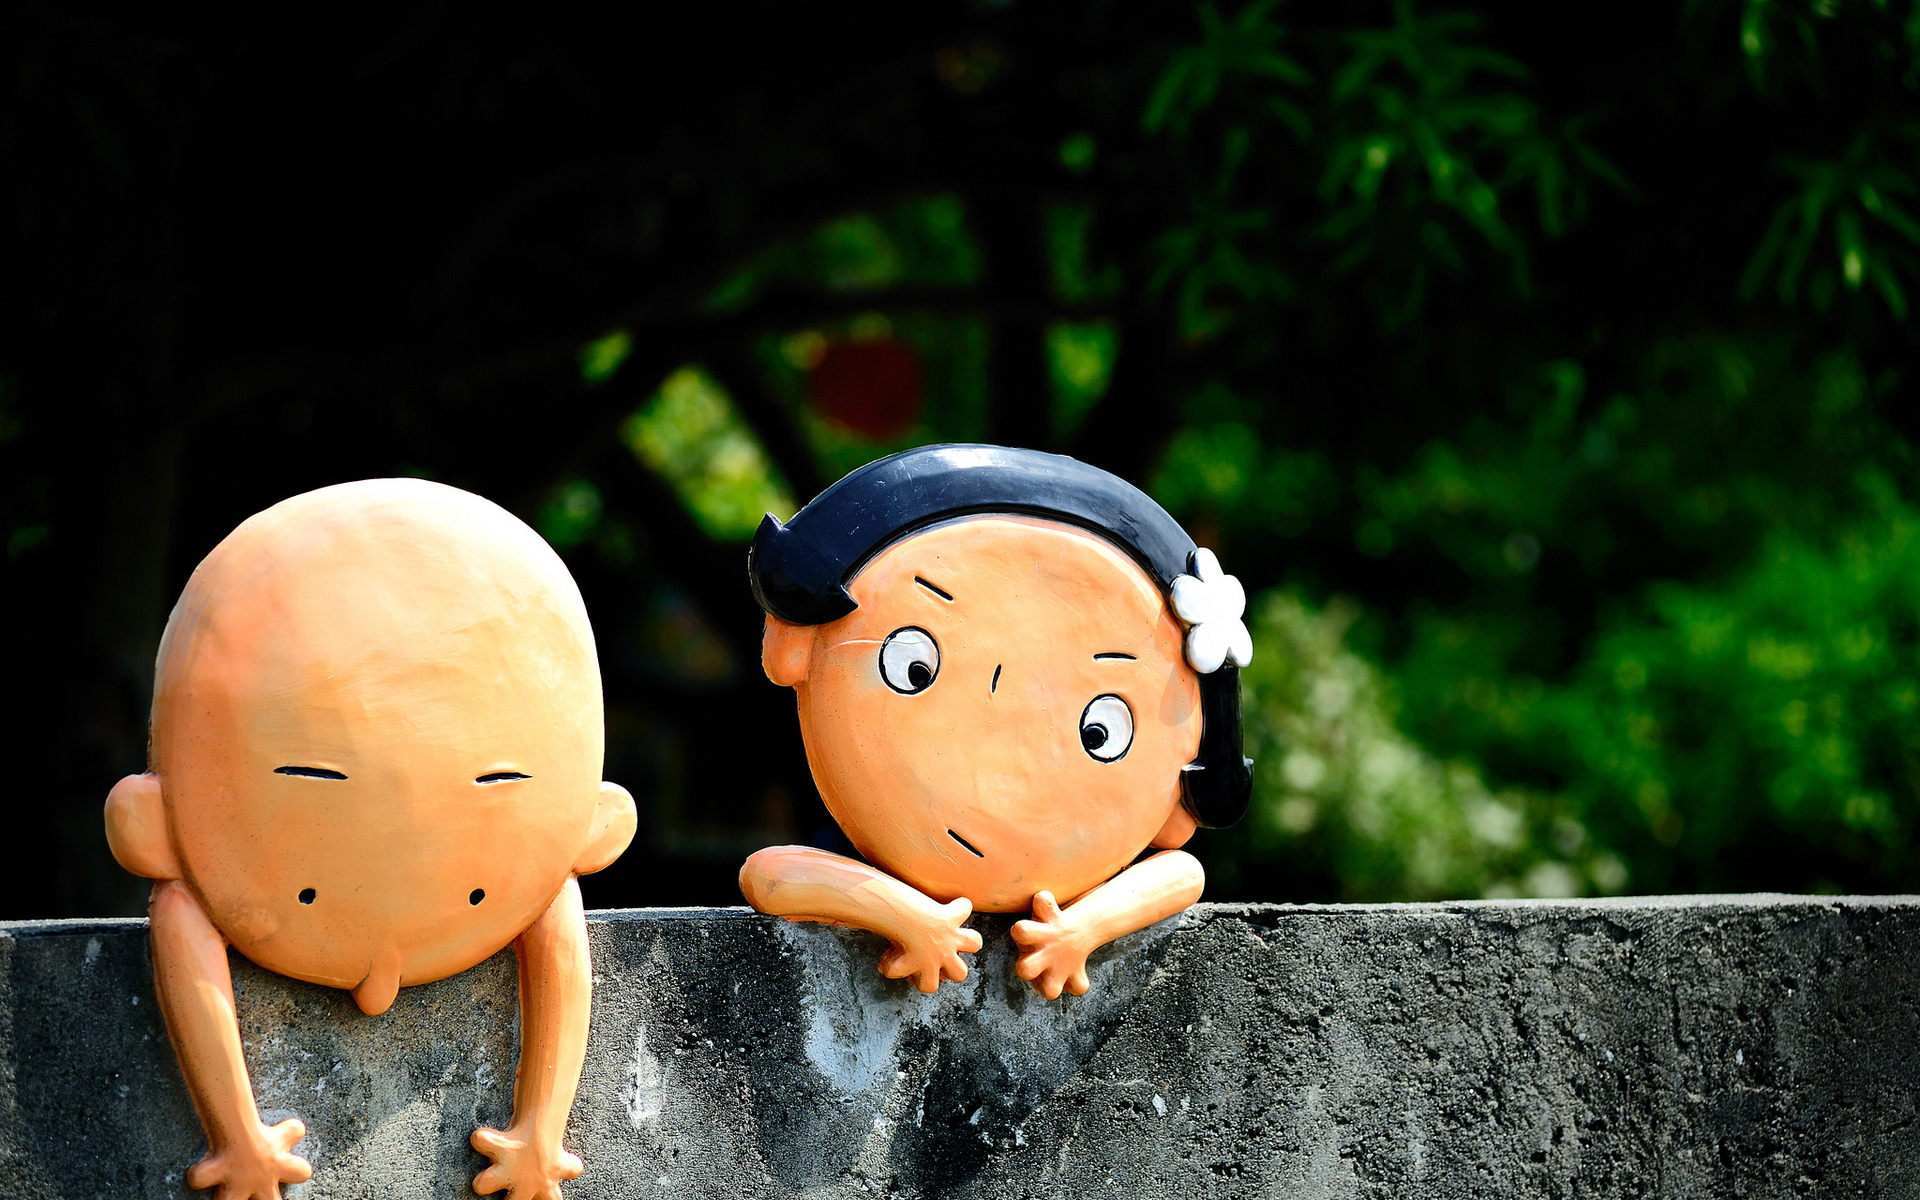 Funny child Love Wallpaper : Humor funny children dolls photography cute faces eyes bokeh wall situation friends girls boys ...